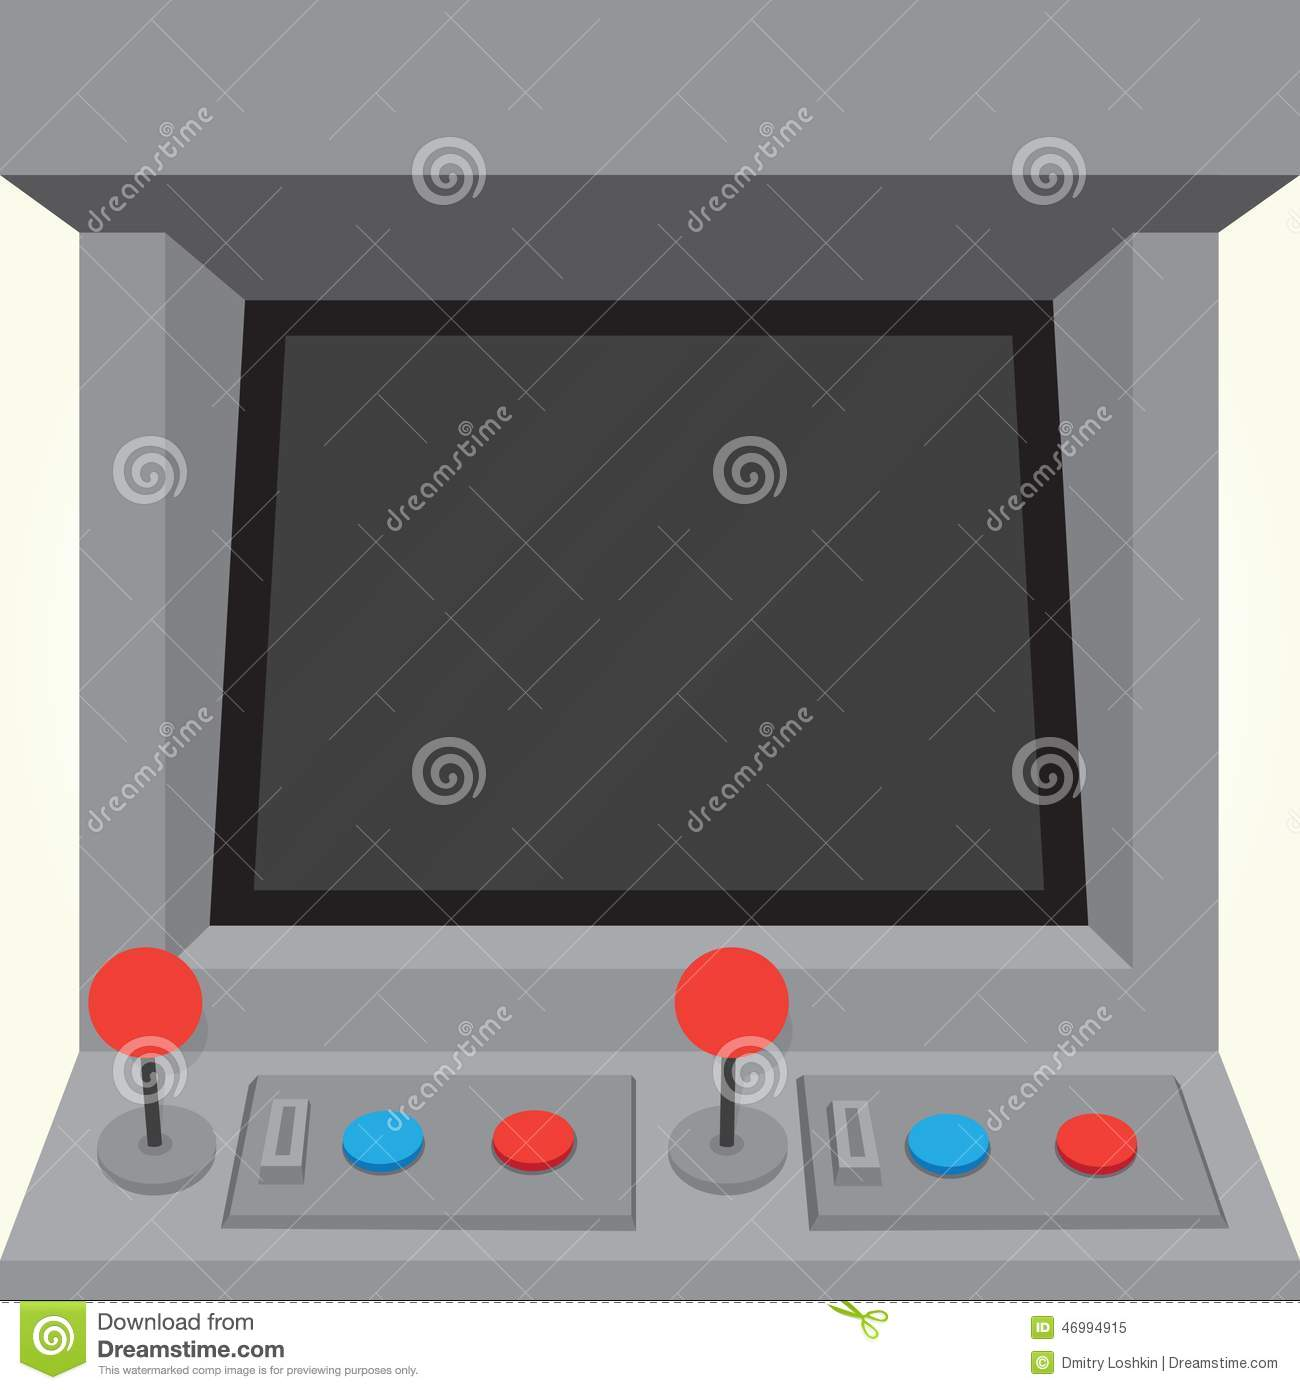 Arcade Machine Game Cabinet Isolated Vector Stock Vector - Image ...